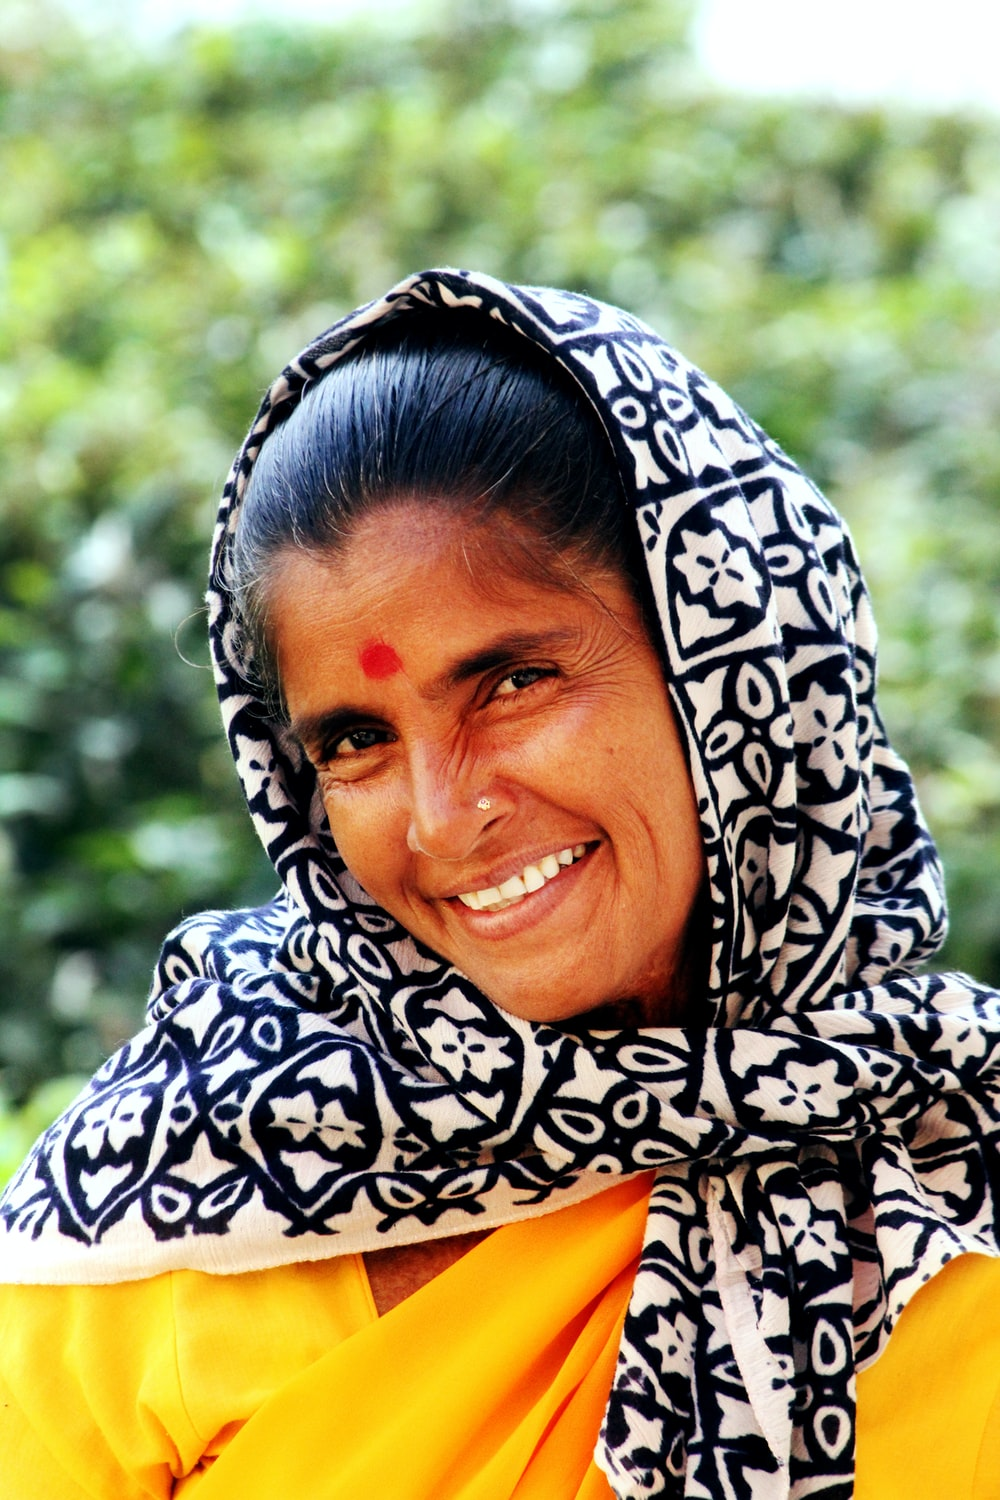 woman wearing white and black floral scarf while smiling